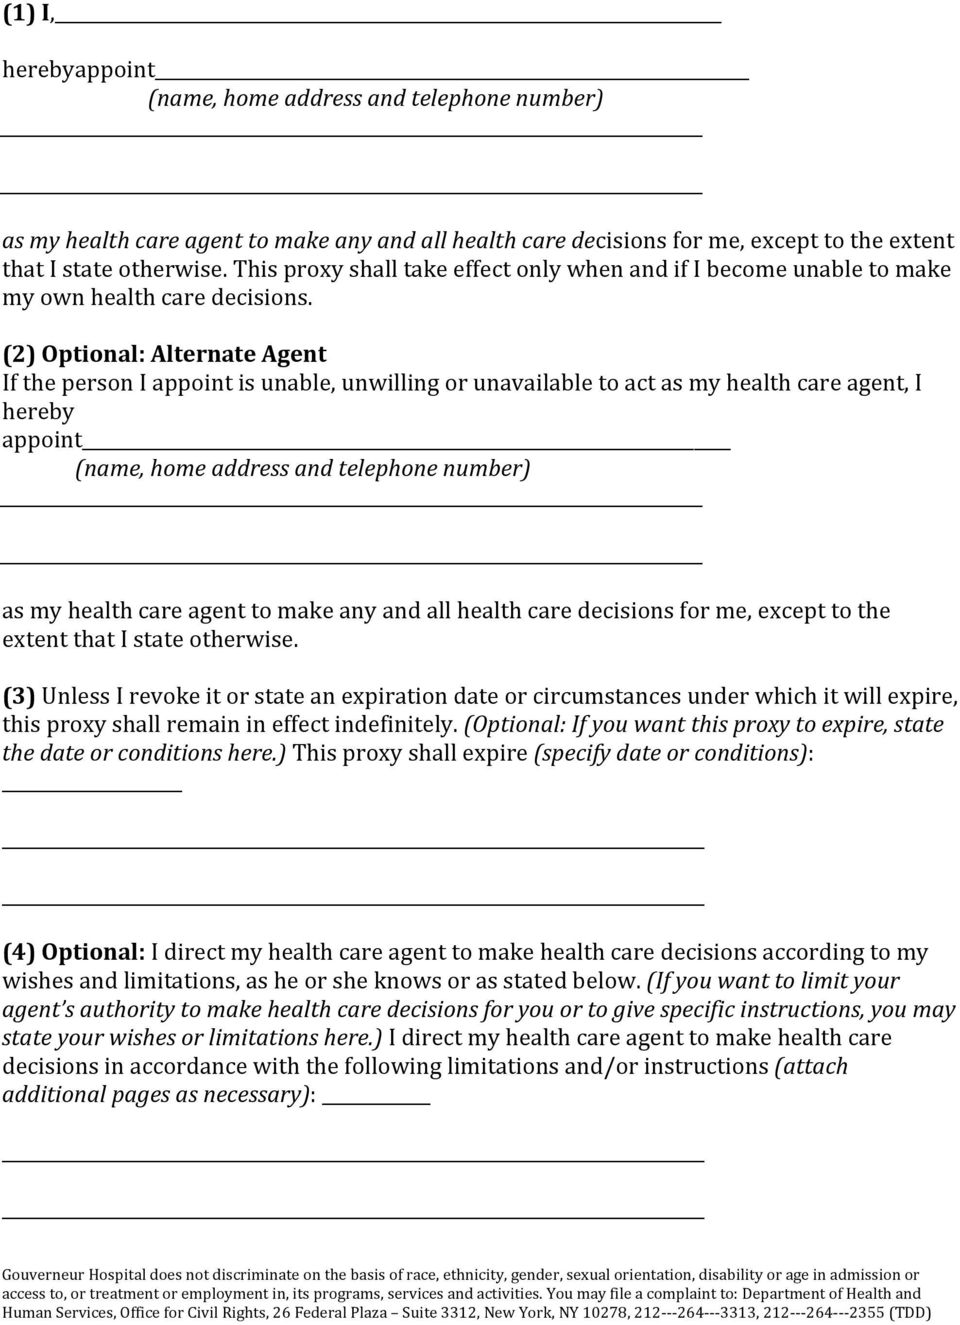 (2) Optional: Alternate Agent If the person I appoint is unable, unwilling or unavailable to act as my health care agent, I hereby appoint (name, home address and telephone number) as my health care